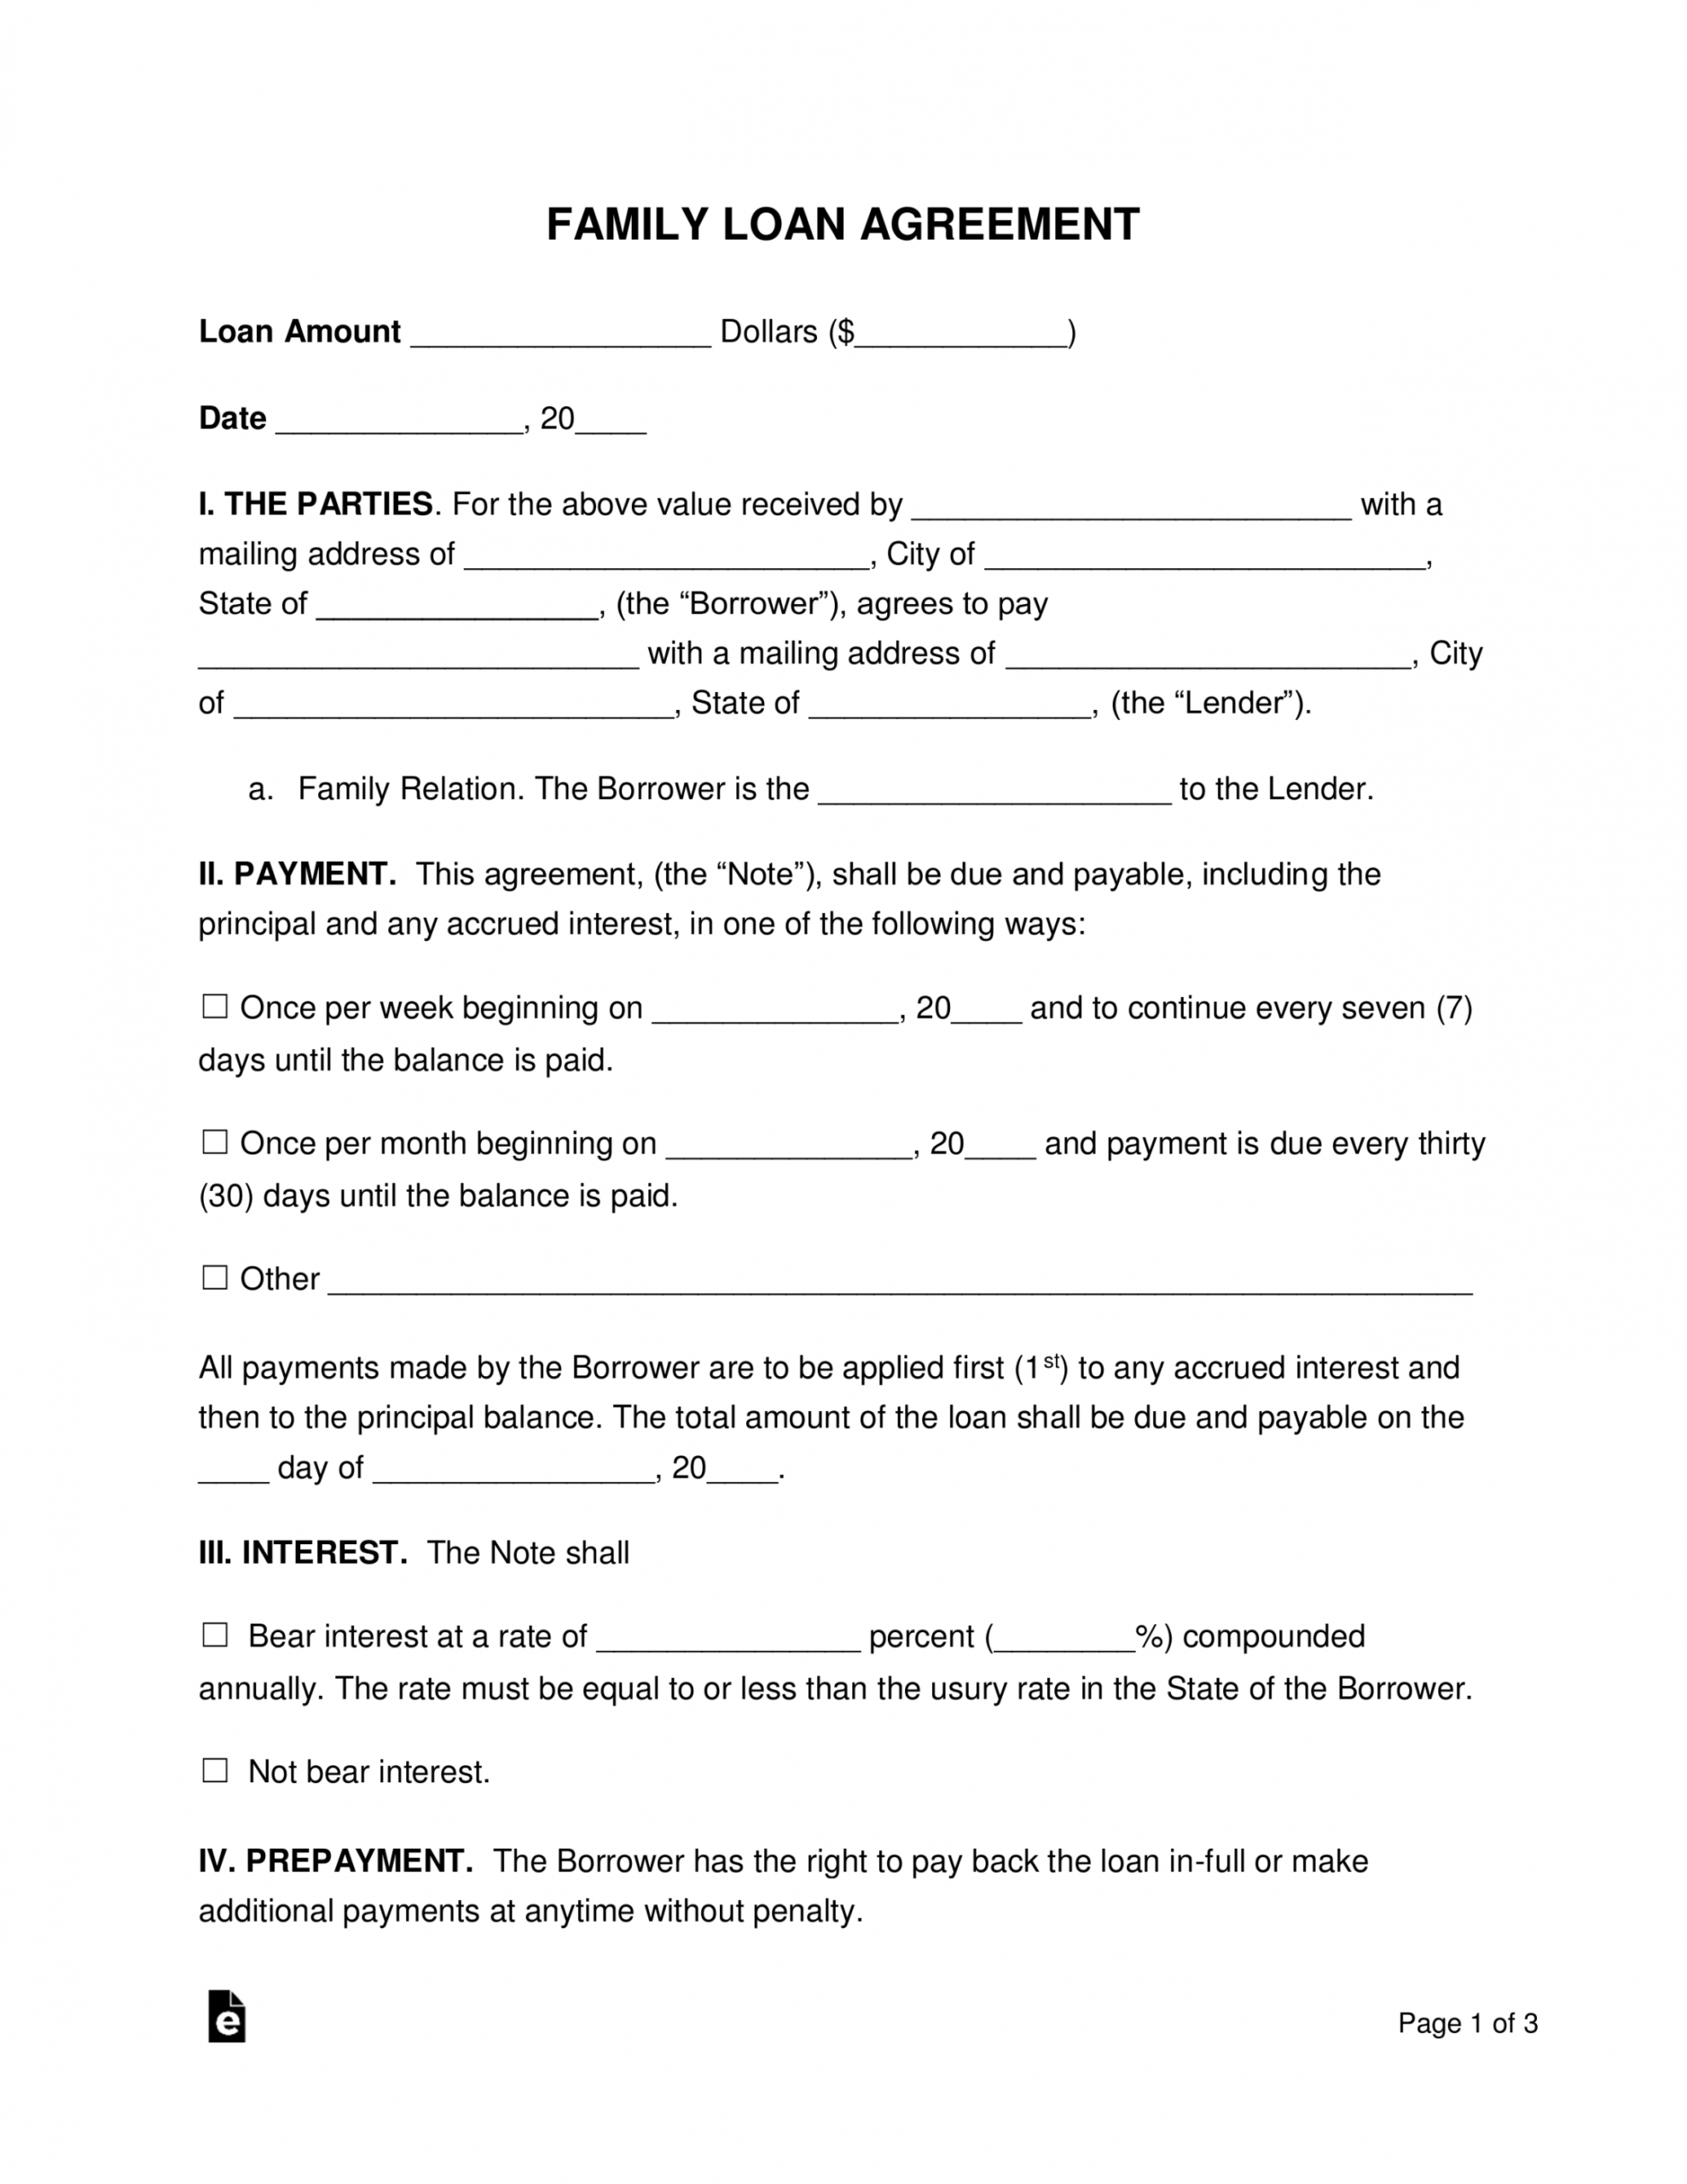 printable free family loan agreement template  pdf  word  eforms property loan agreement template sample